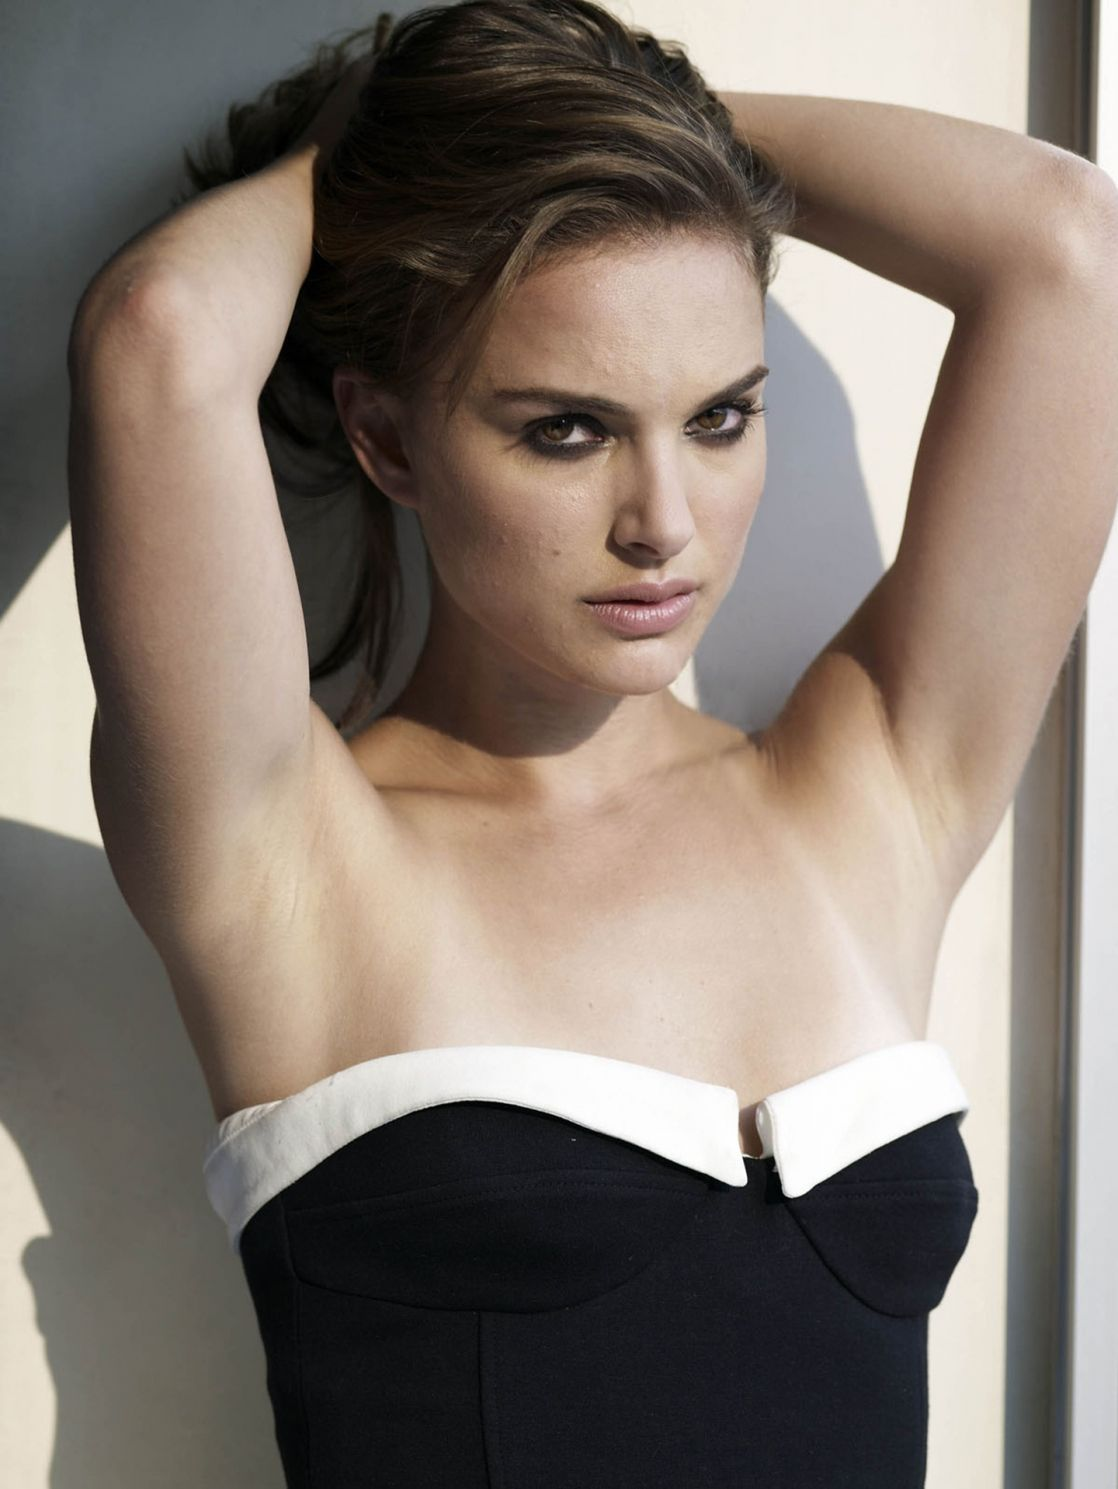 Fappening Natalie Portman nudes (17 photo), Topless, Fappening, Twitter, butt 2006